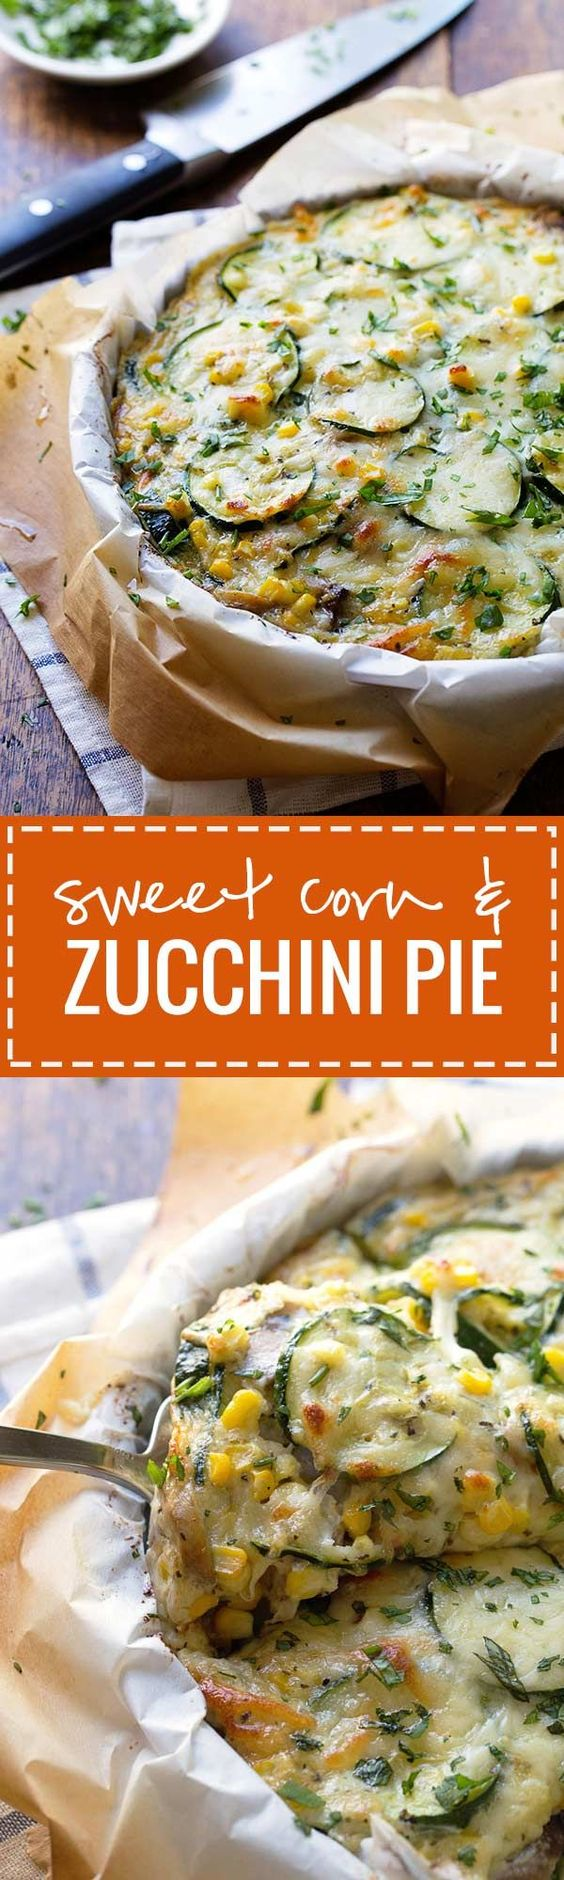 Sweet Corn and Zucchini Pie - a simple crustless pie featuring fresh summer veggies and melted cheese. 275 calories. | pinchofyum.com